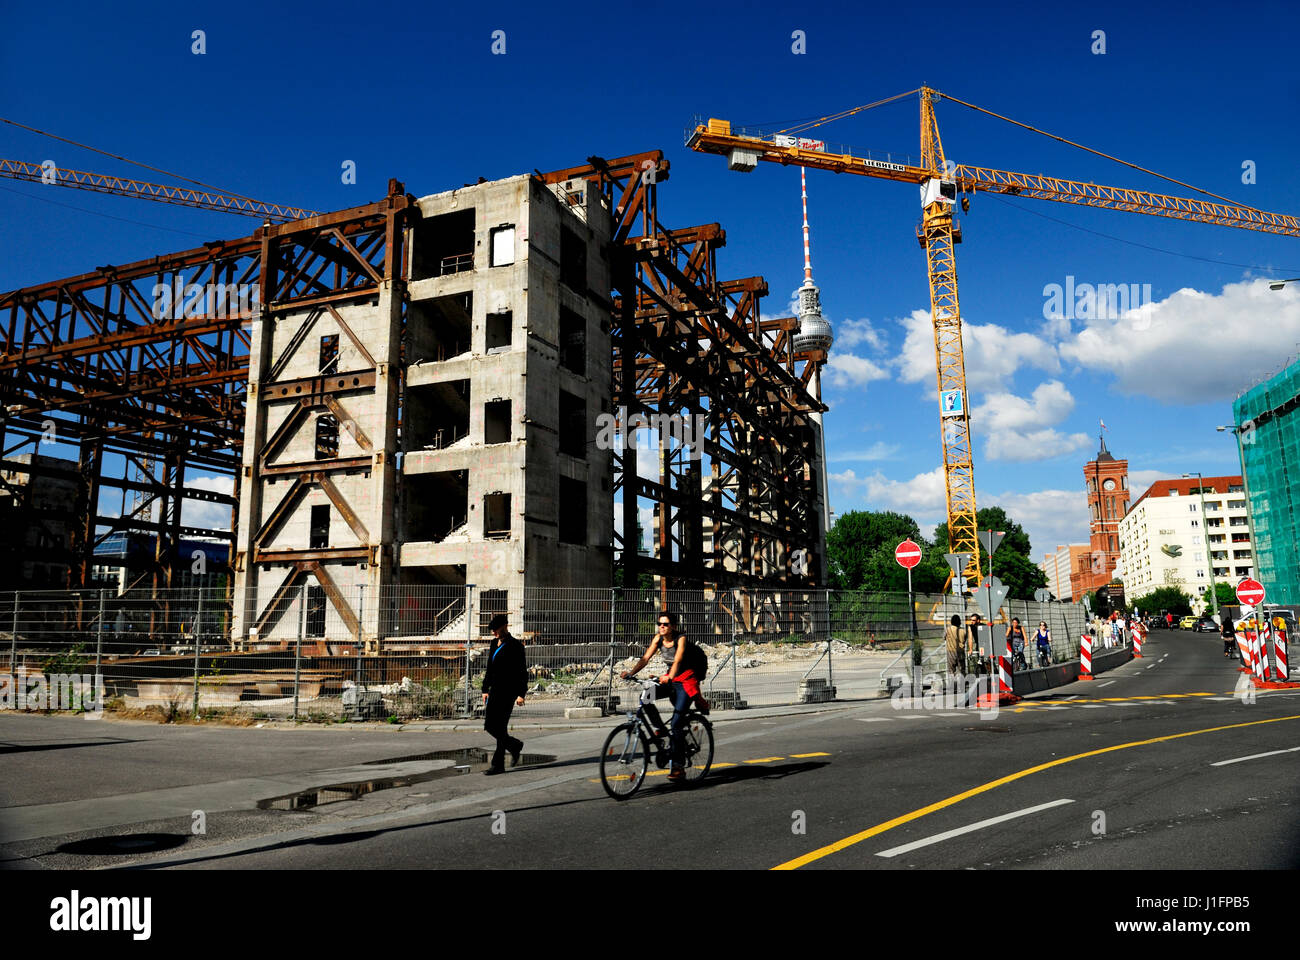 baustelle, baustellen, berlin, brd, breakup, building, bundesrepublik, construction, crane, ddr, demolition, architecture, - Stock Image